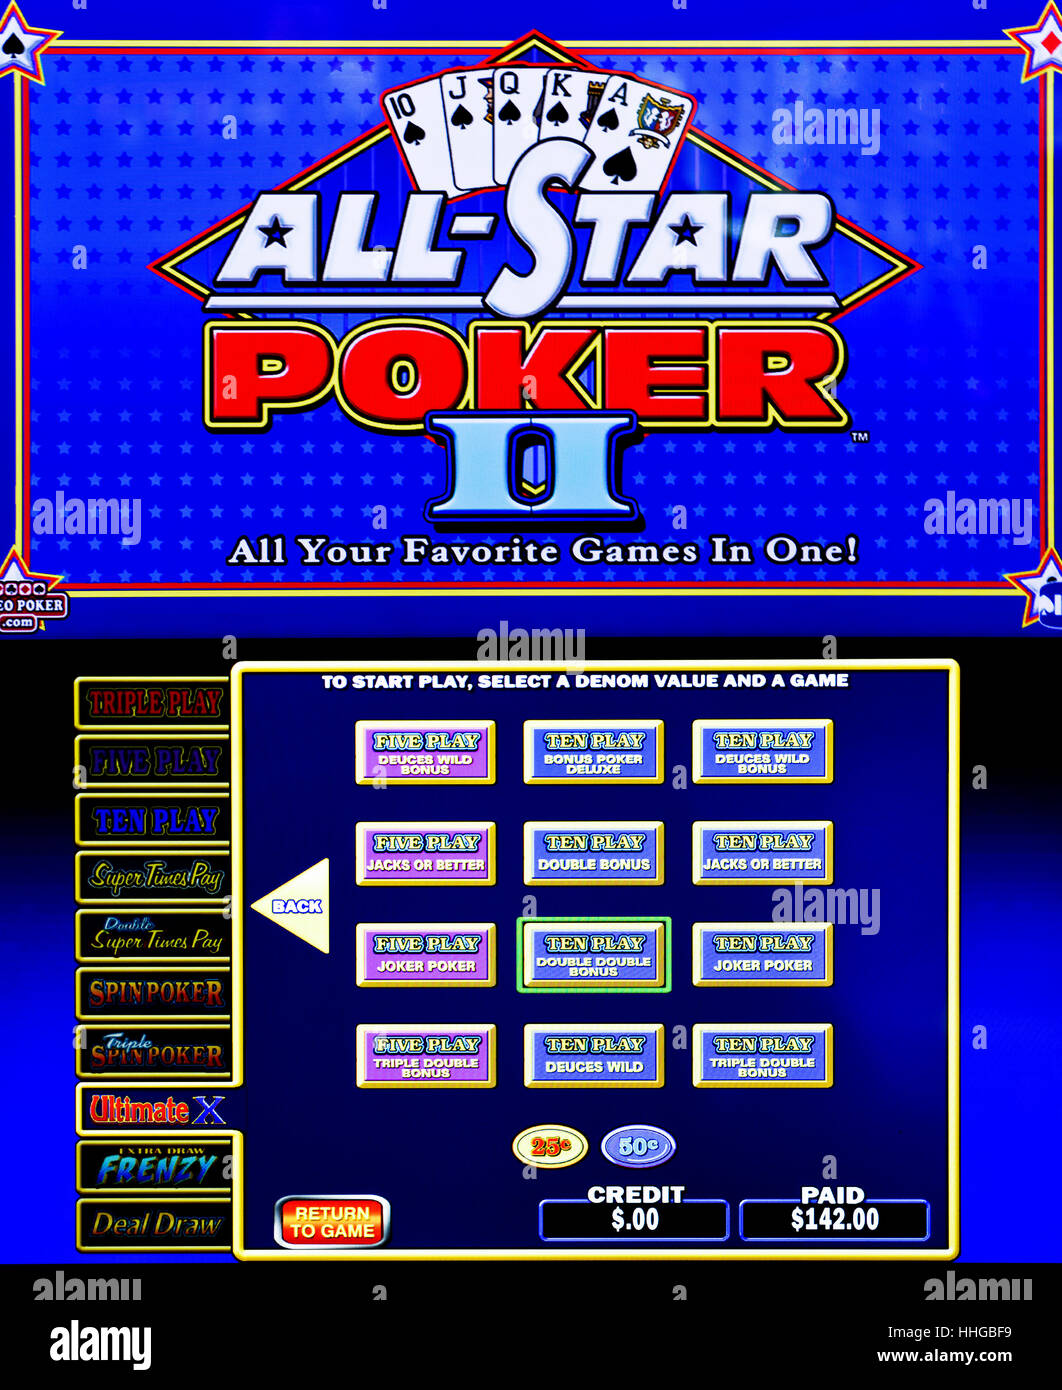 All Star Poker II gambling machine screen Stock Photo ...